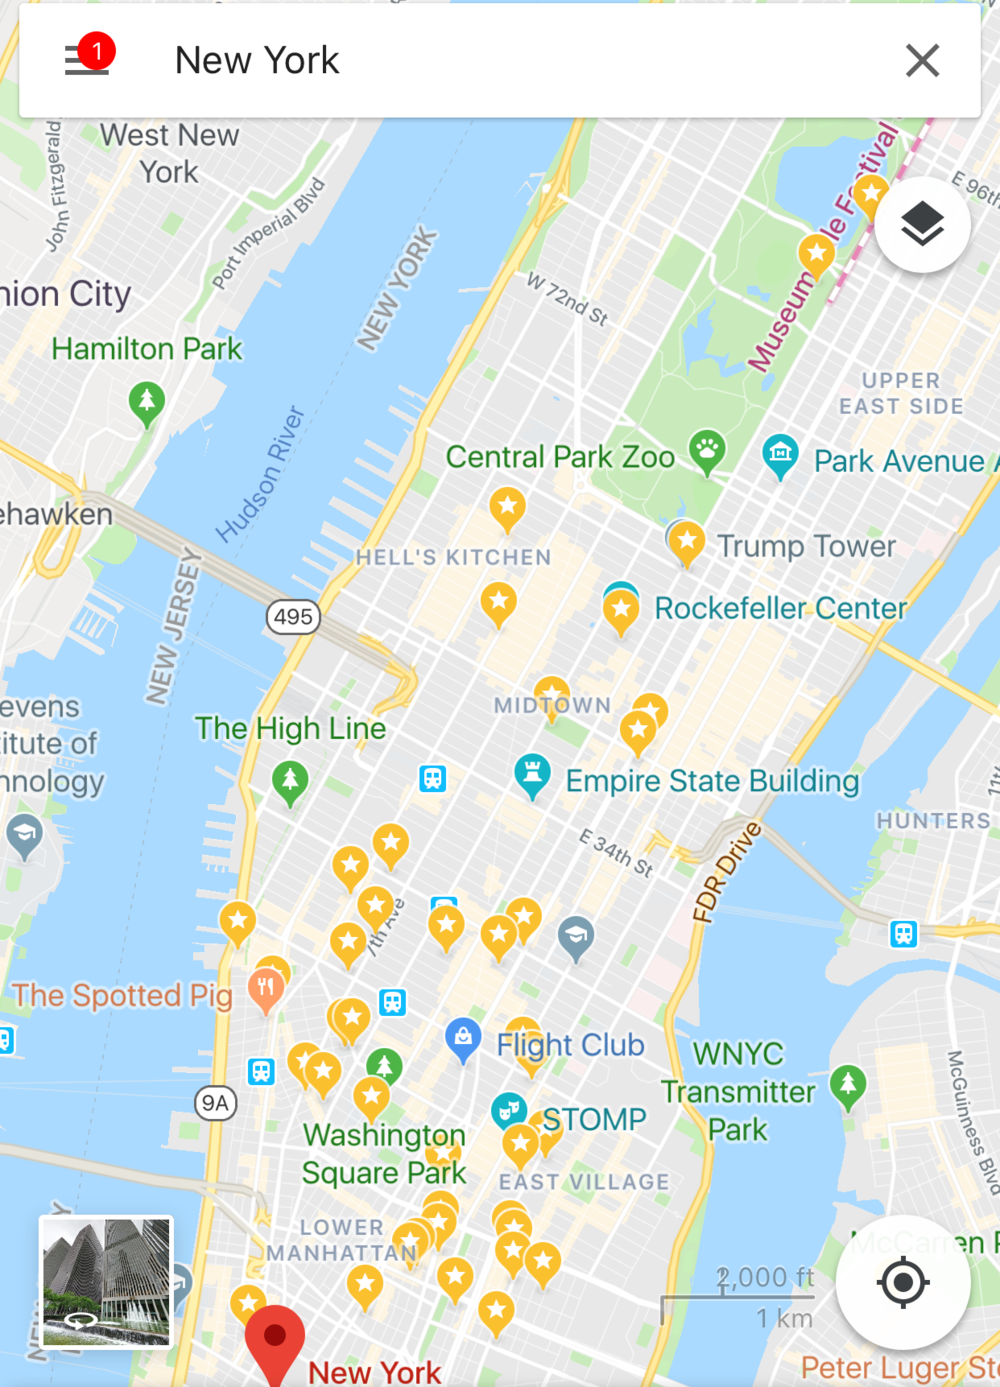 Google Maps is your BFF - This is my essential app- I'm able to save all potential locations and then plan my days around certain geographical areas.